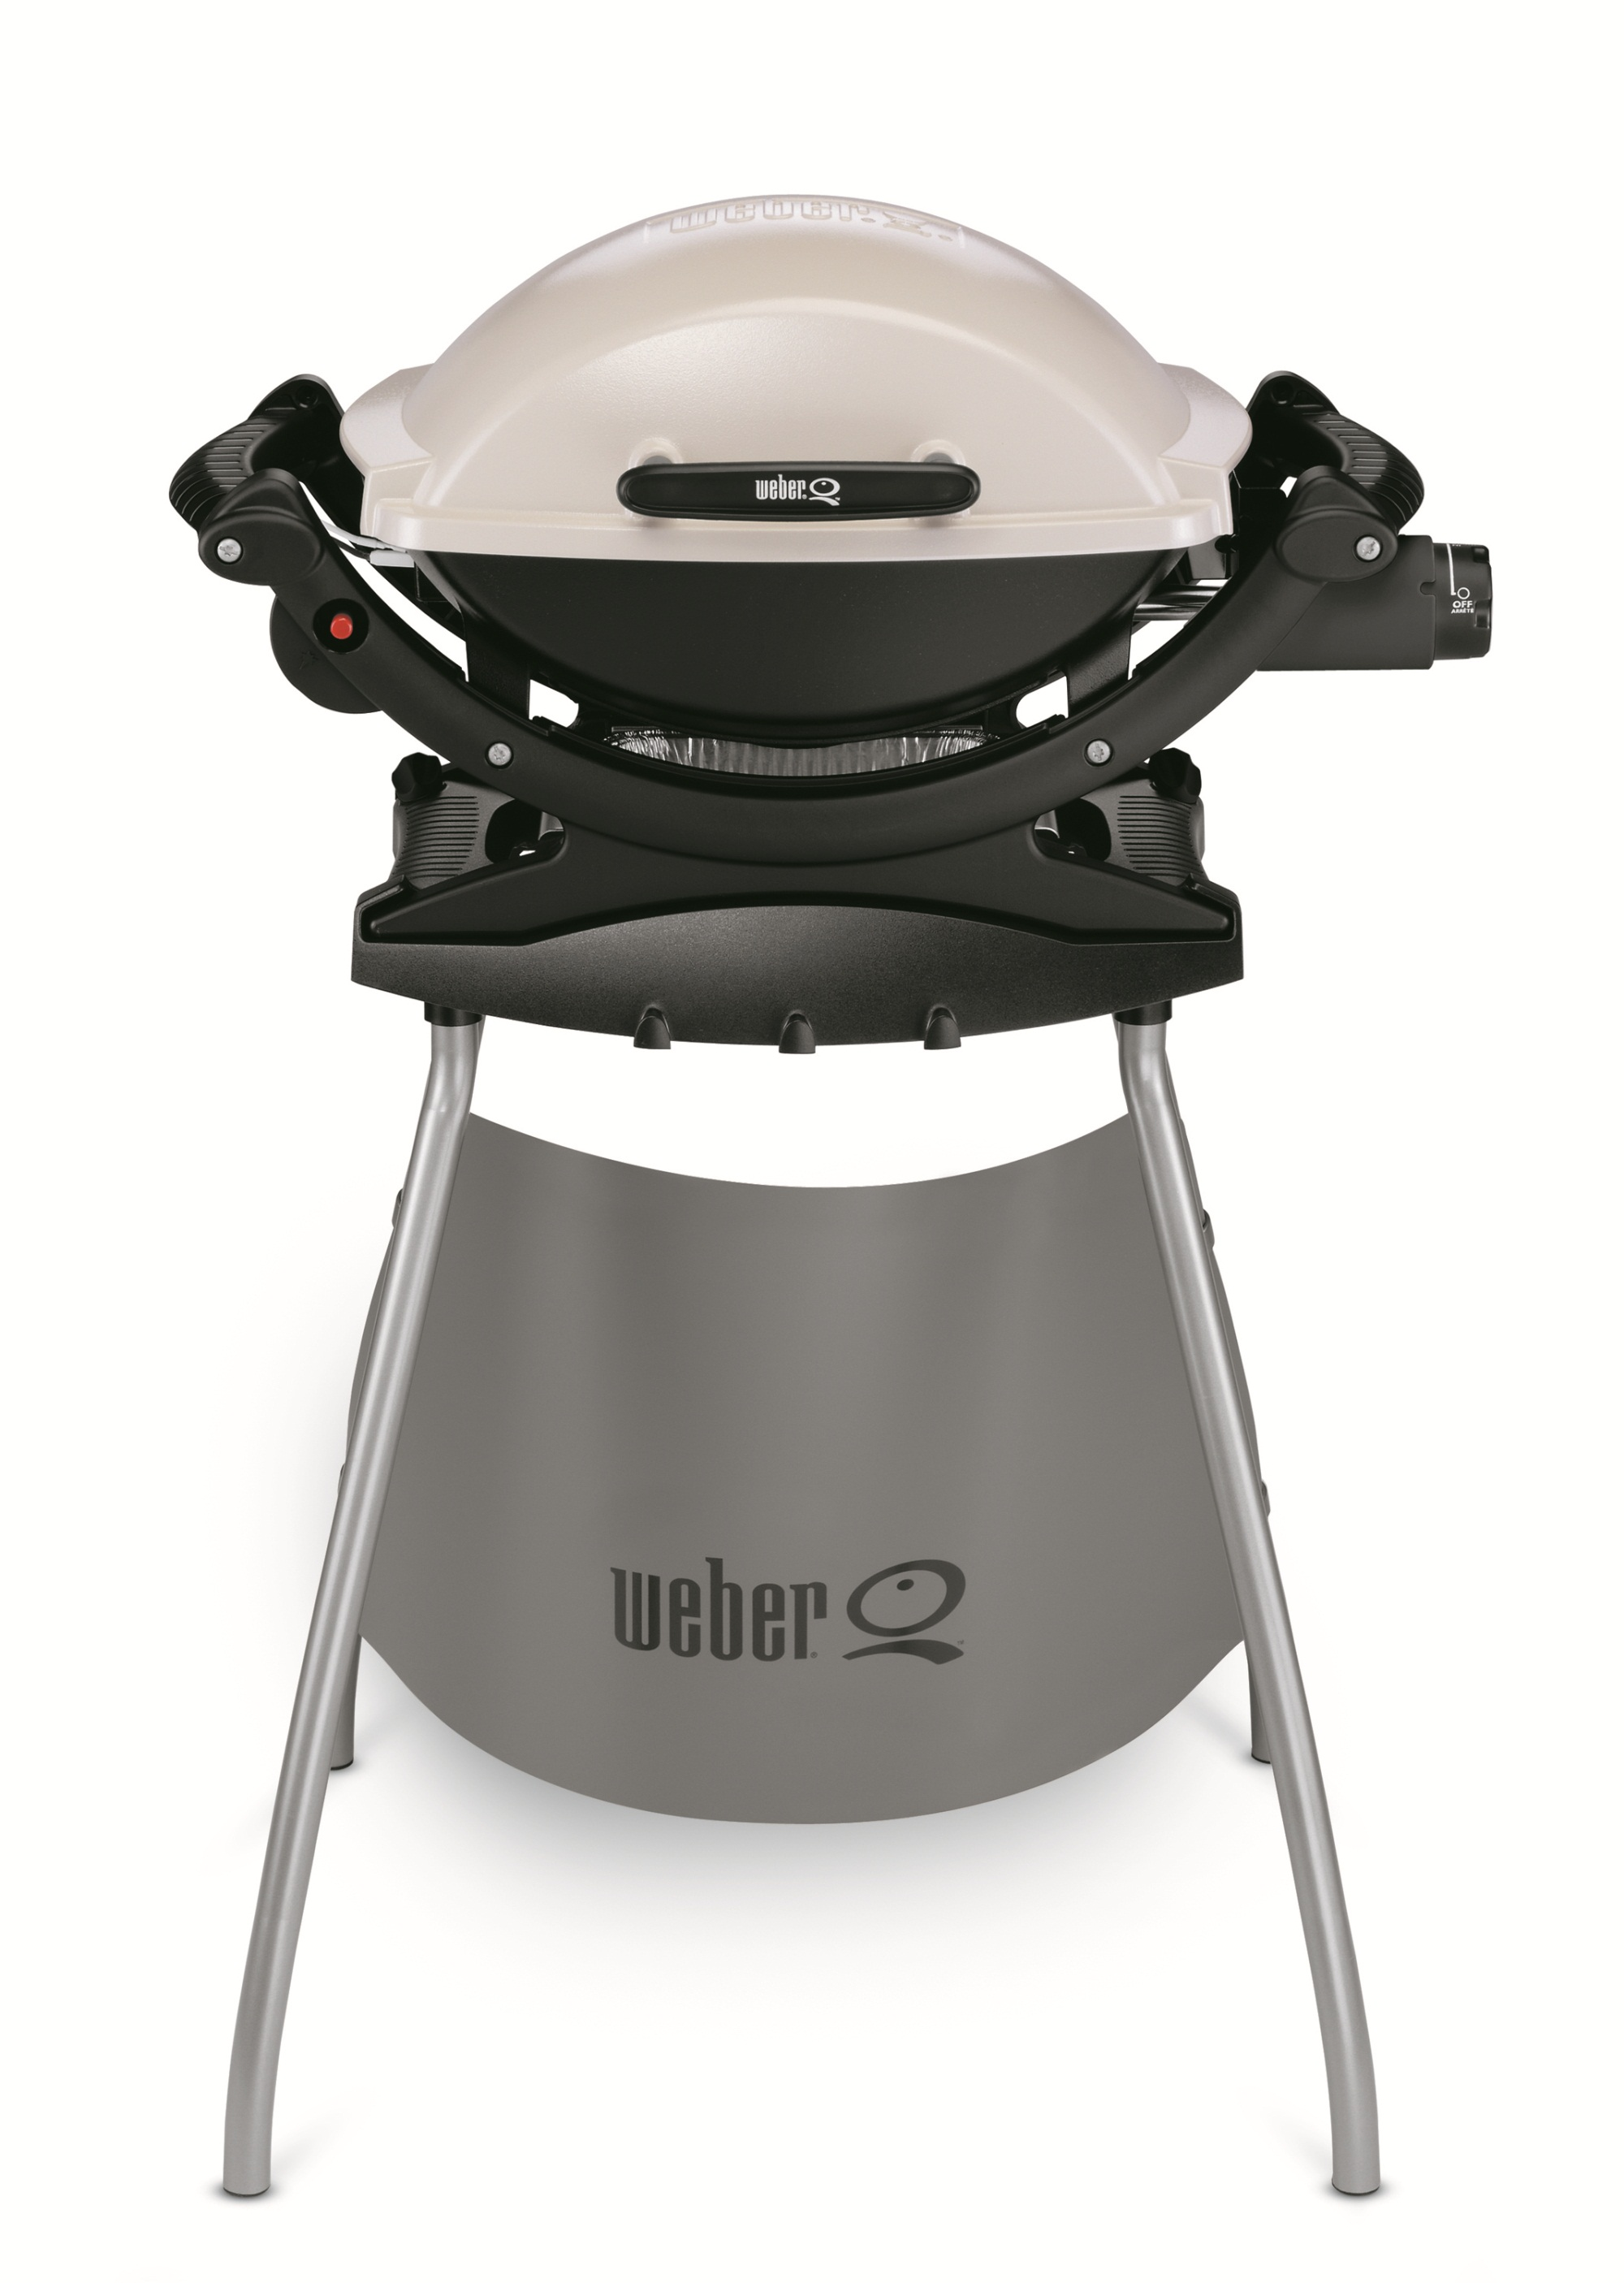 weber q 100 titan stand gasbarbecues weber. Black Bedroom Furniture Sets. Home Design Ideas